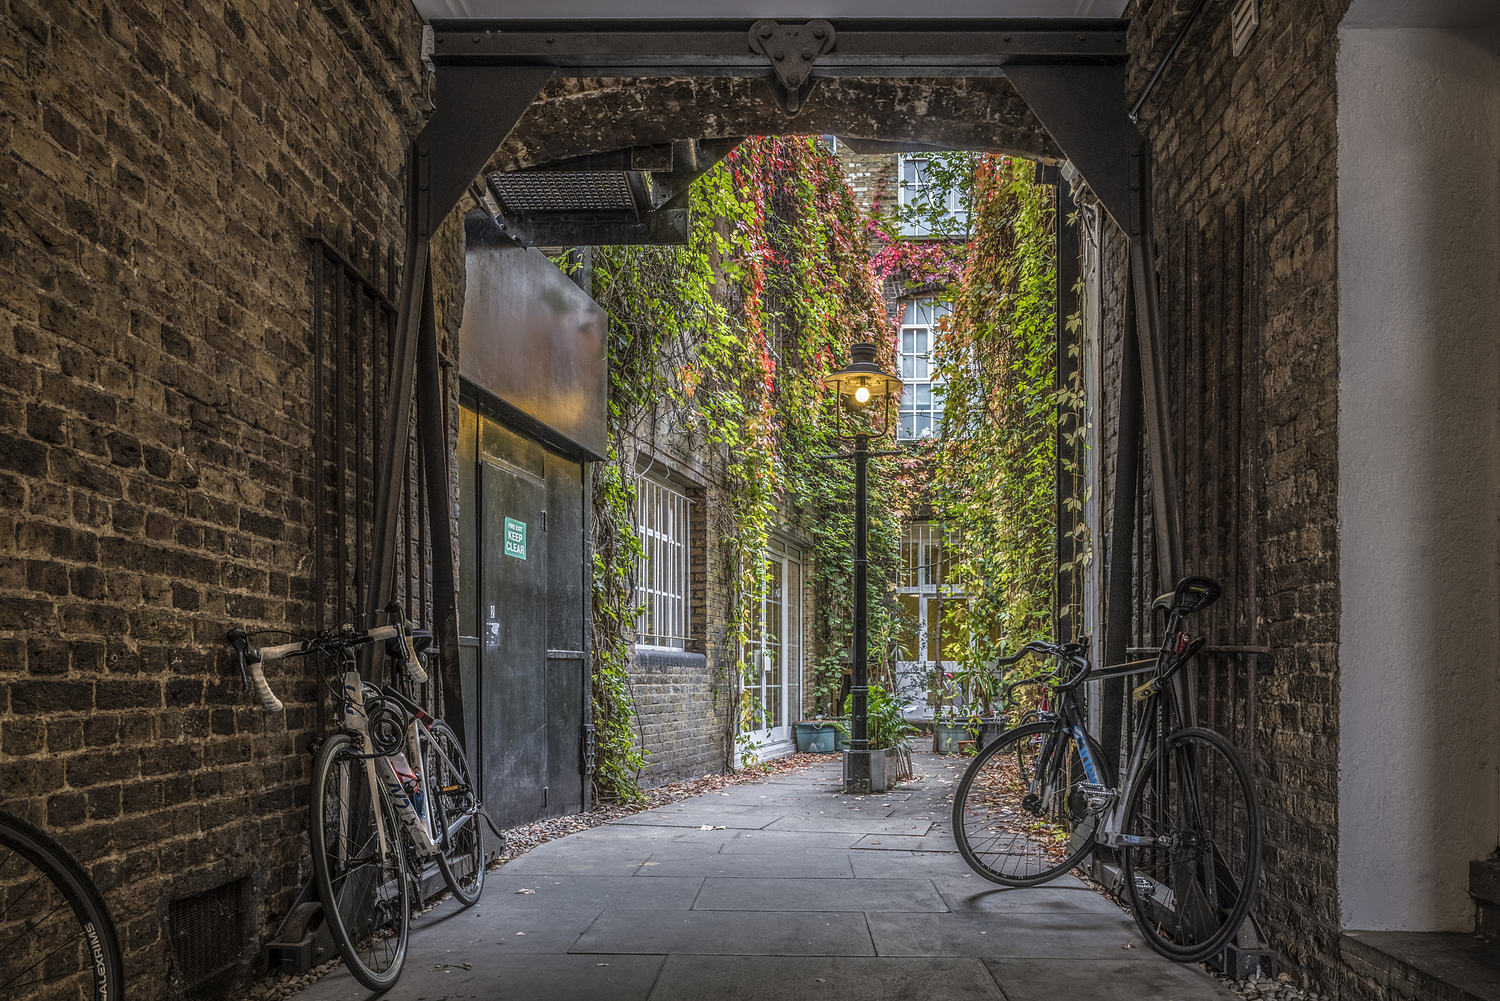 Alleyway view, London